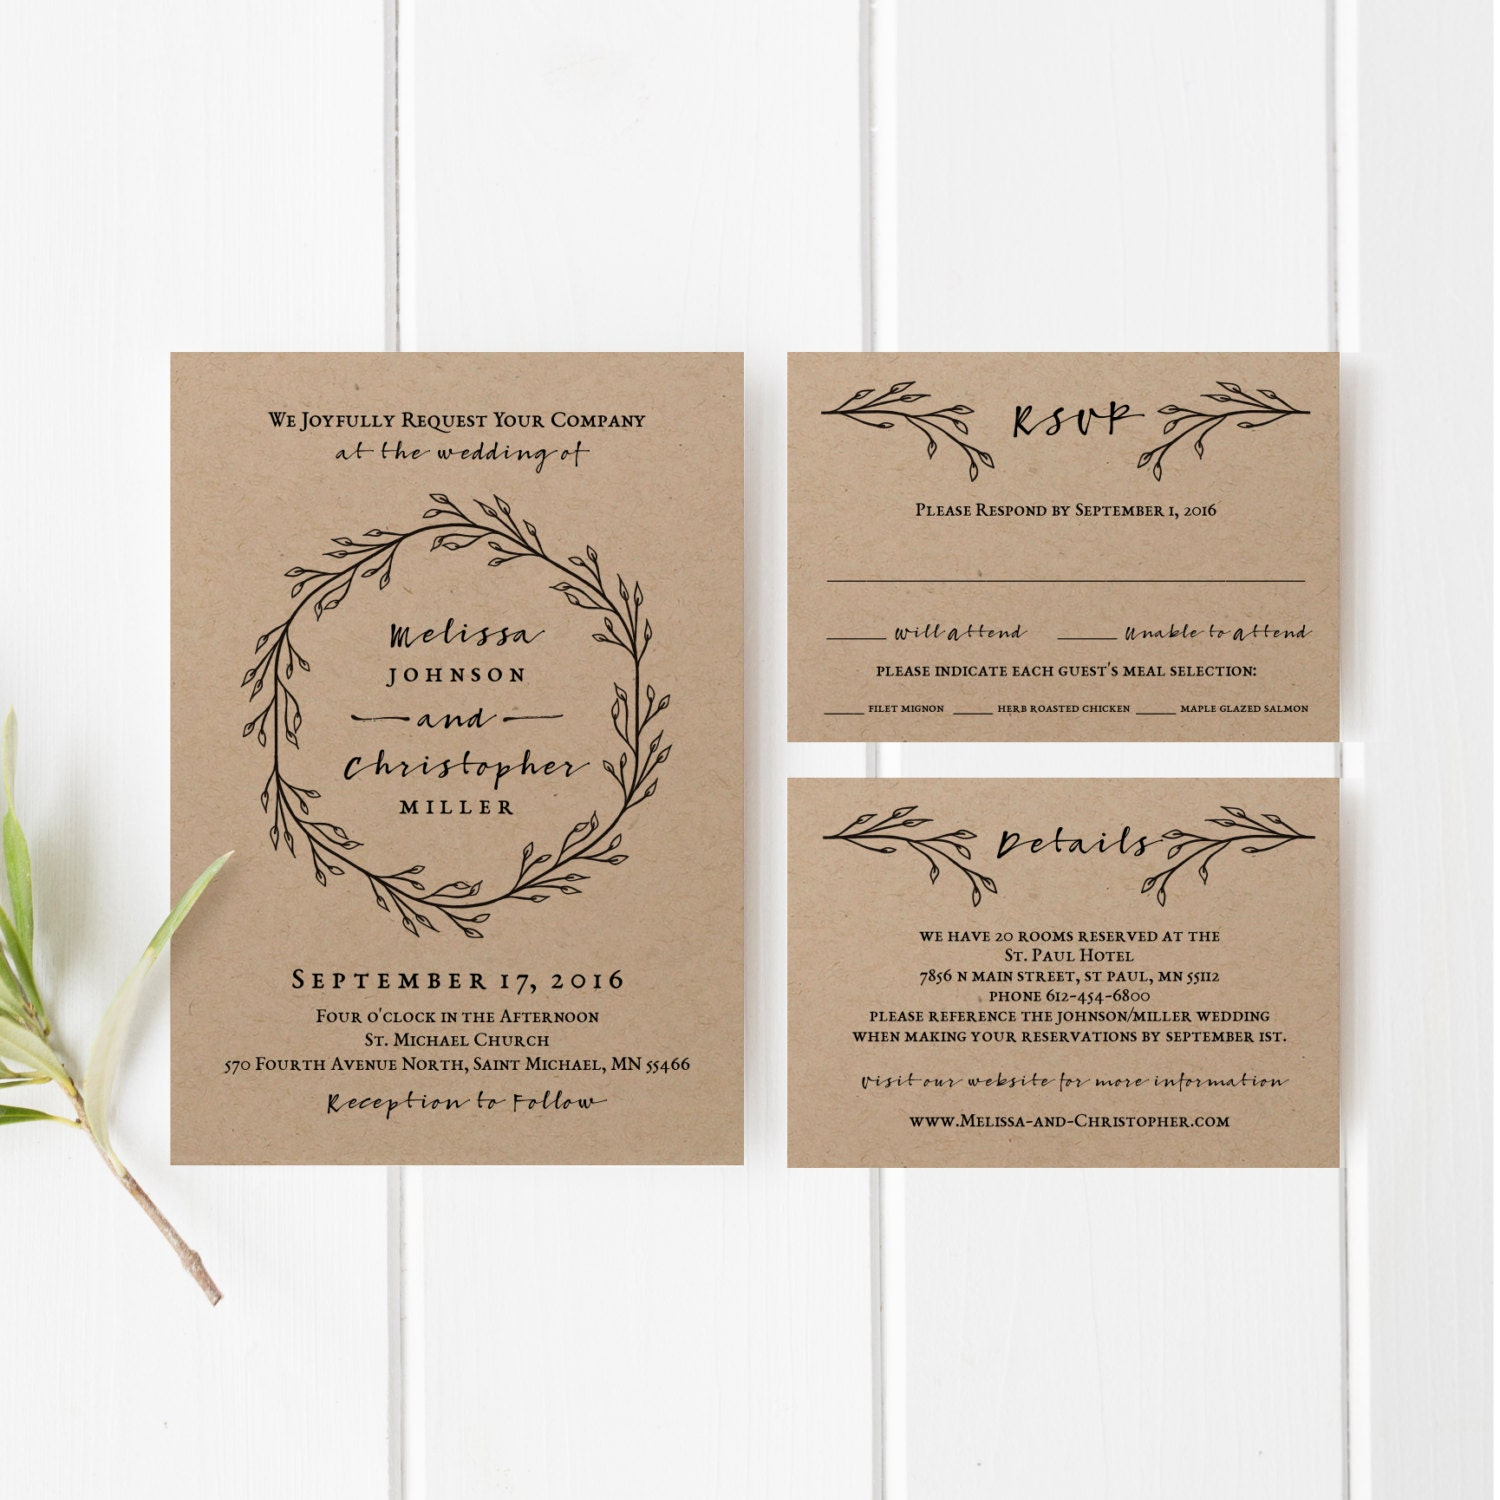 Wedding Invitations - J A Z Z H A N D S P A P E R C O